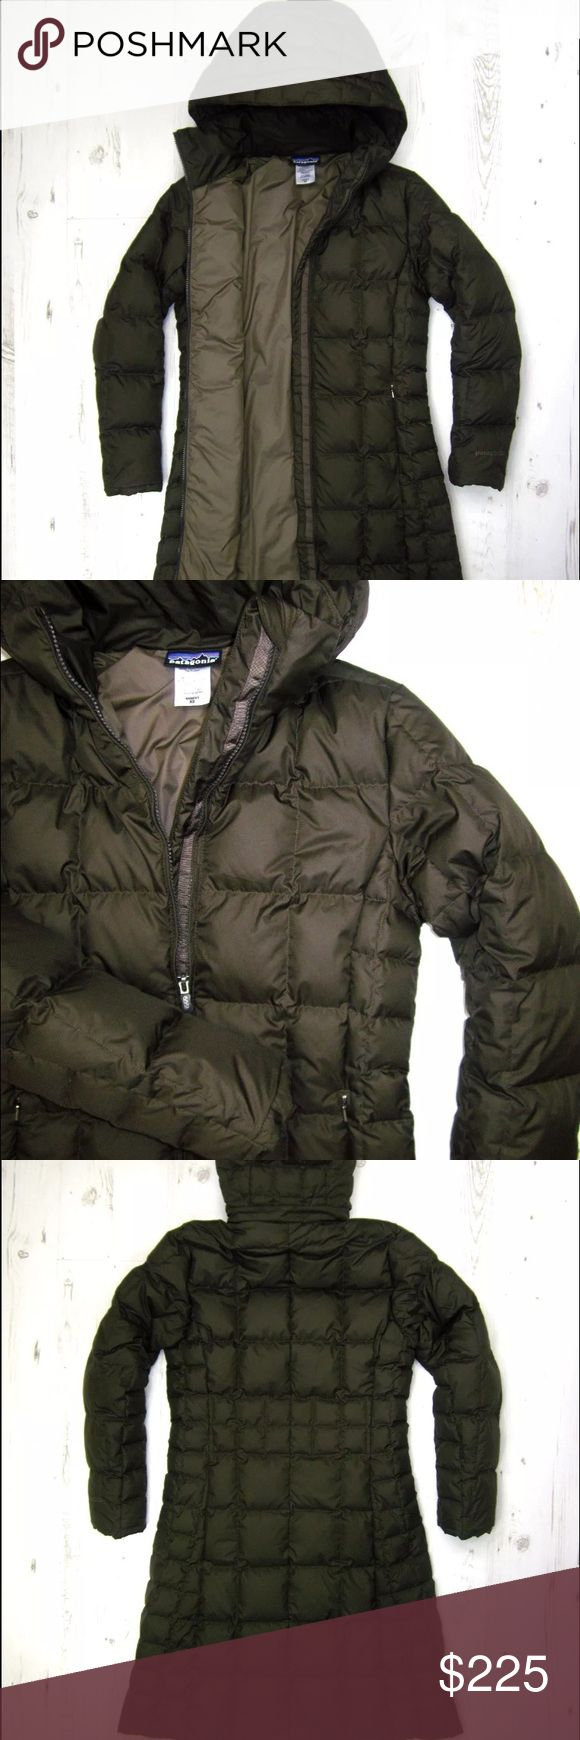 Patagonia Down With It Parka Like New Beautiful Patagonia parka in like new condition. Just purchased online secondhand but I don't like the style. Color is more brown than green as seen in photos. Older version of down with it Parka but is super warm! Photos are from original seller Patagonia Jackets & Coats Puffers